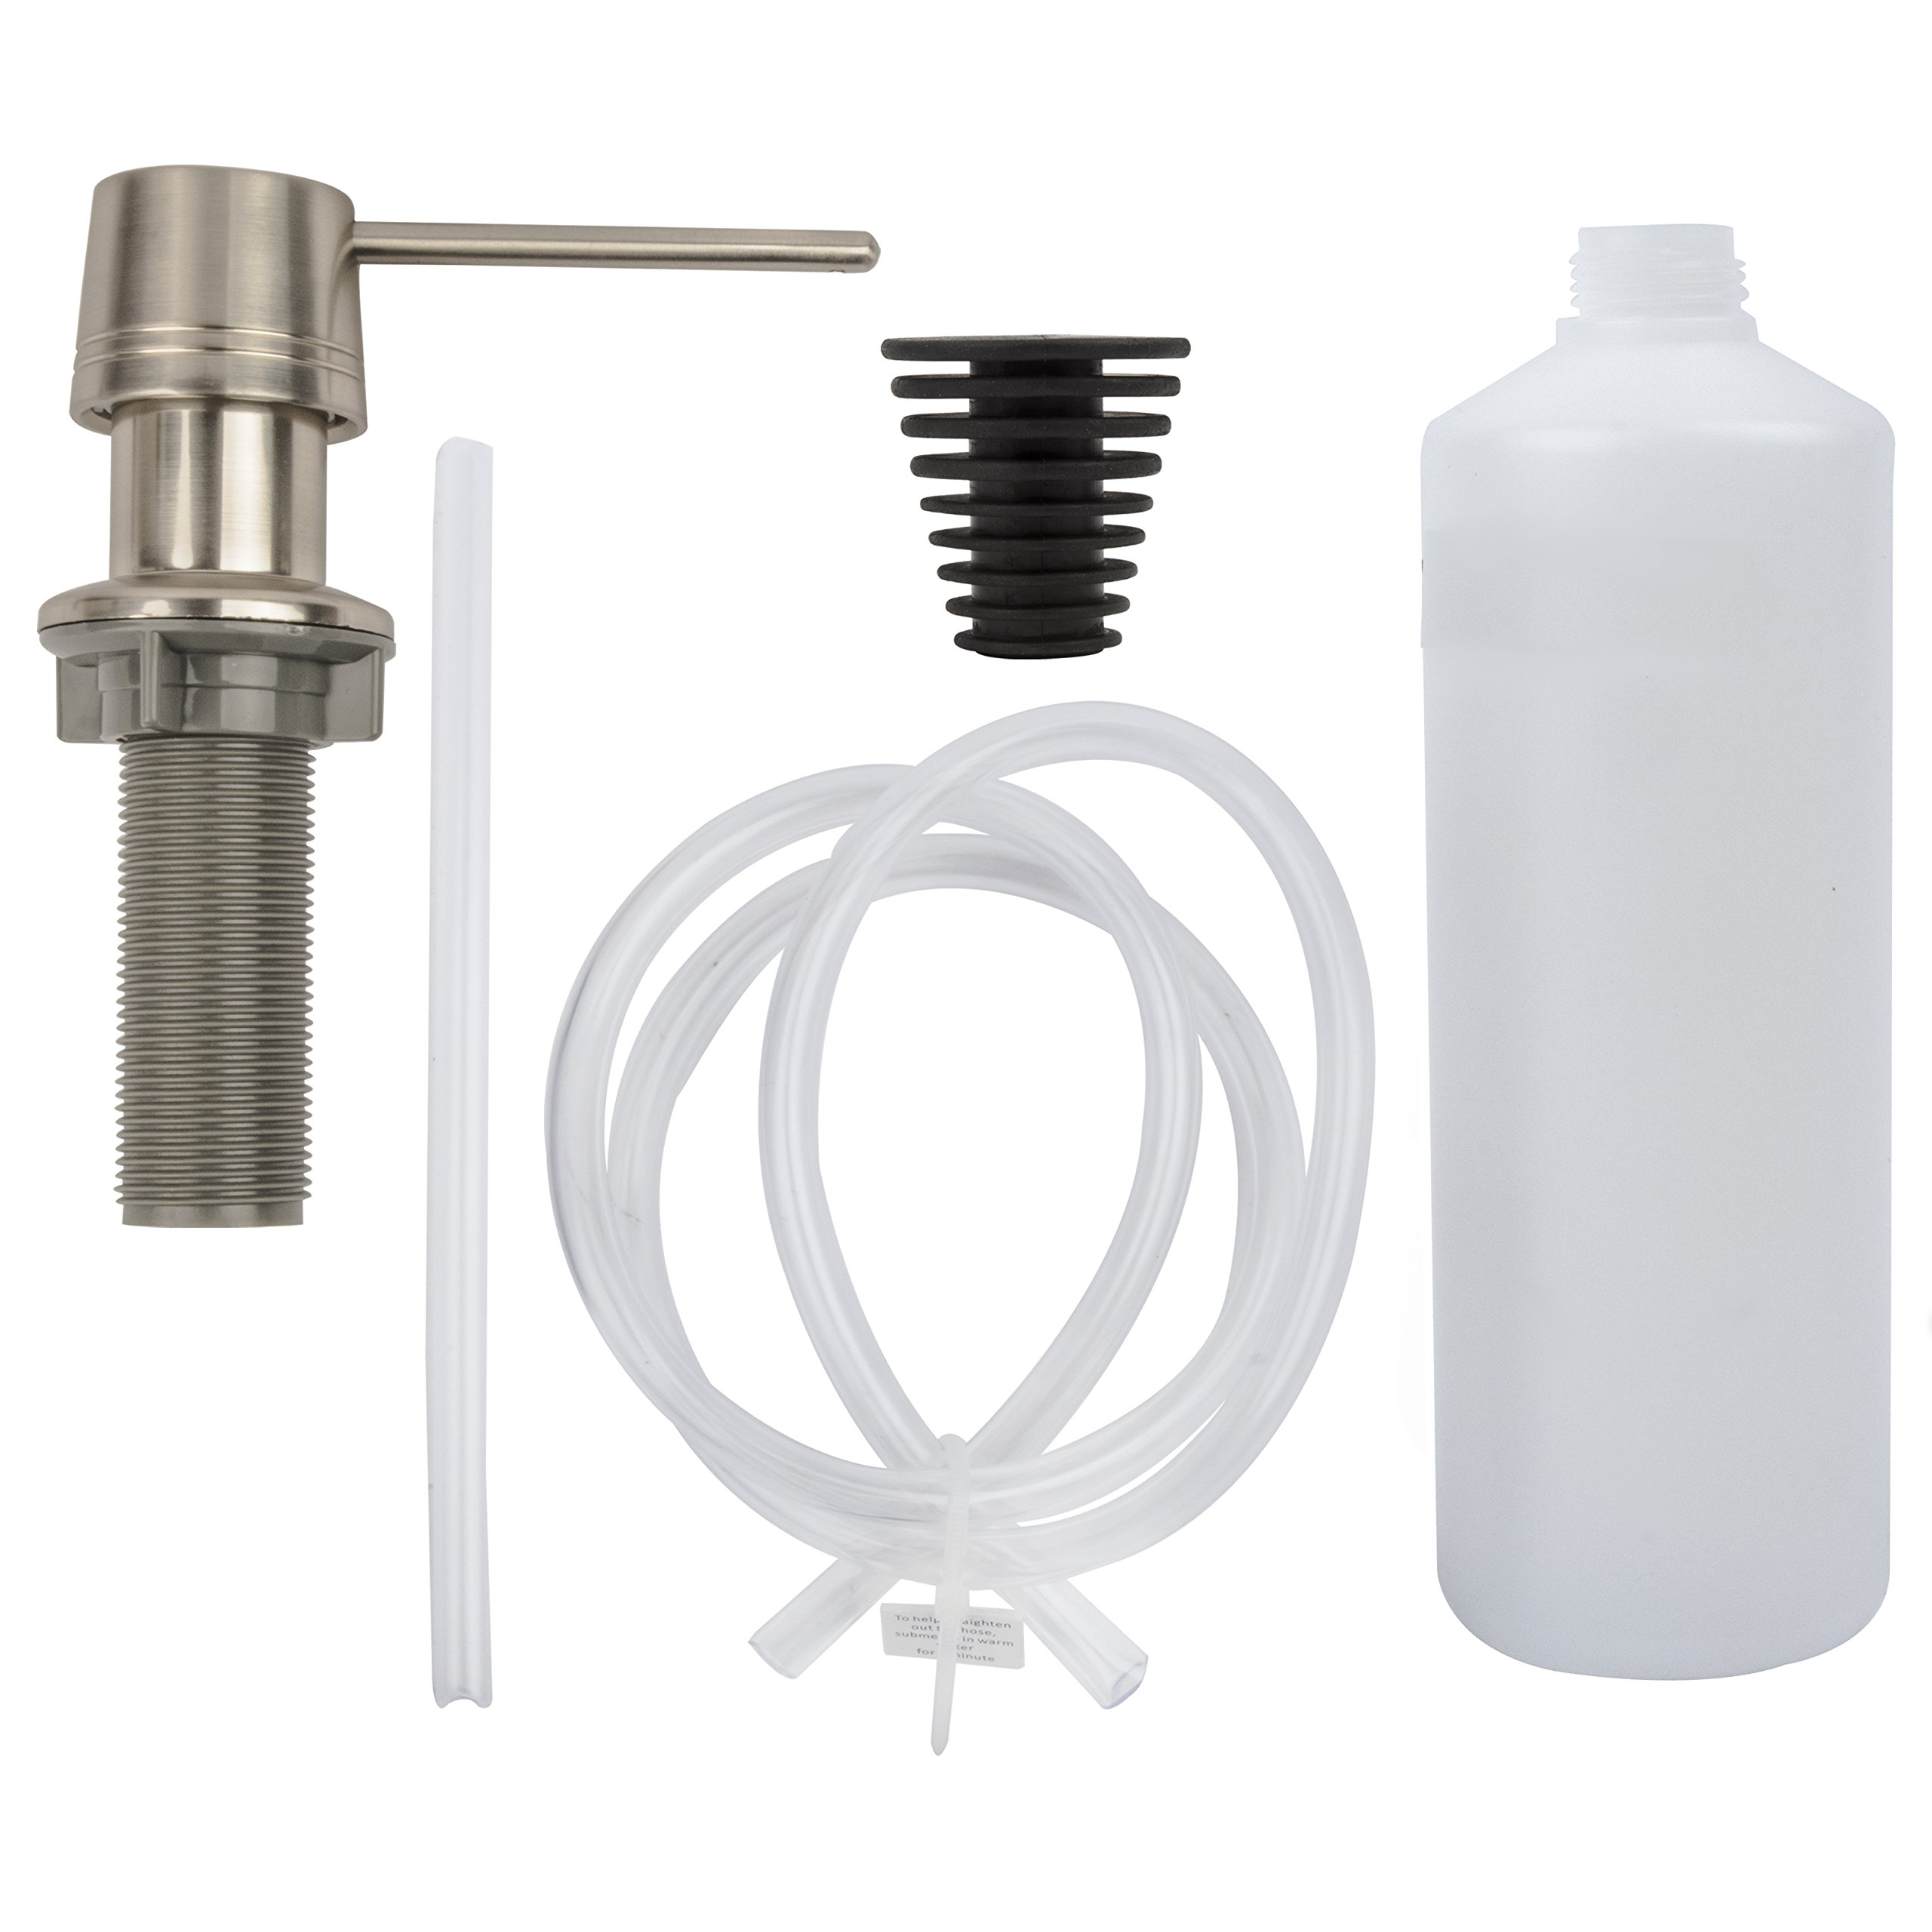 LDR 501 6550SS Deluxe Soap/Lotion Dispenser for Kitchen or Lavatory Sink, Stainless Steel